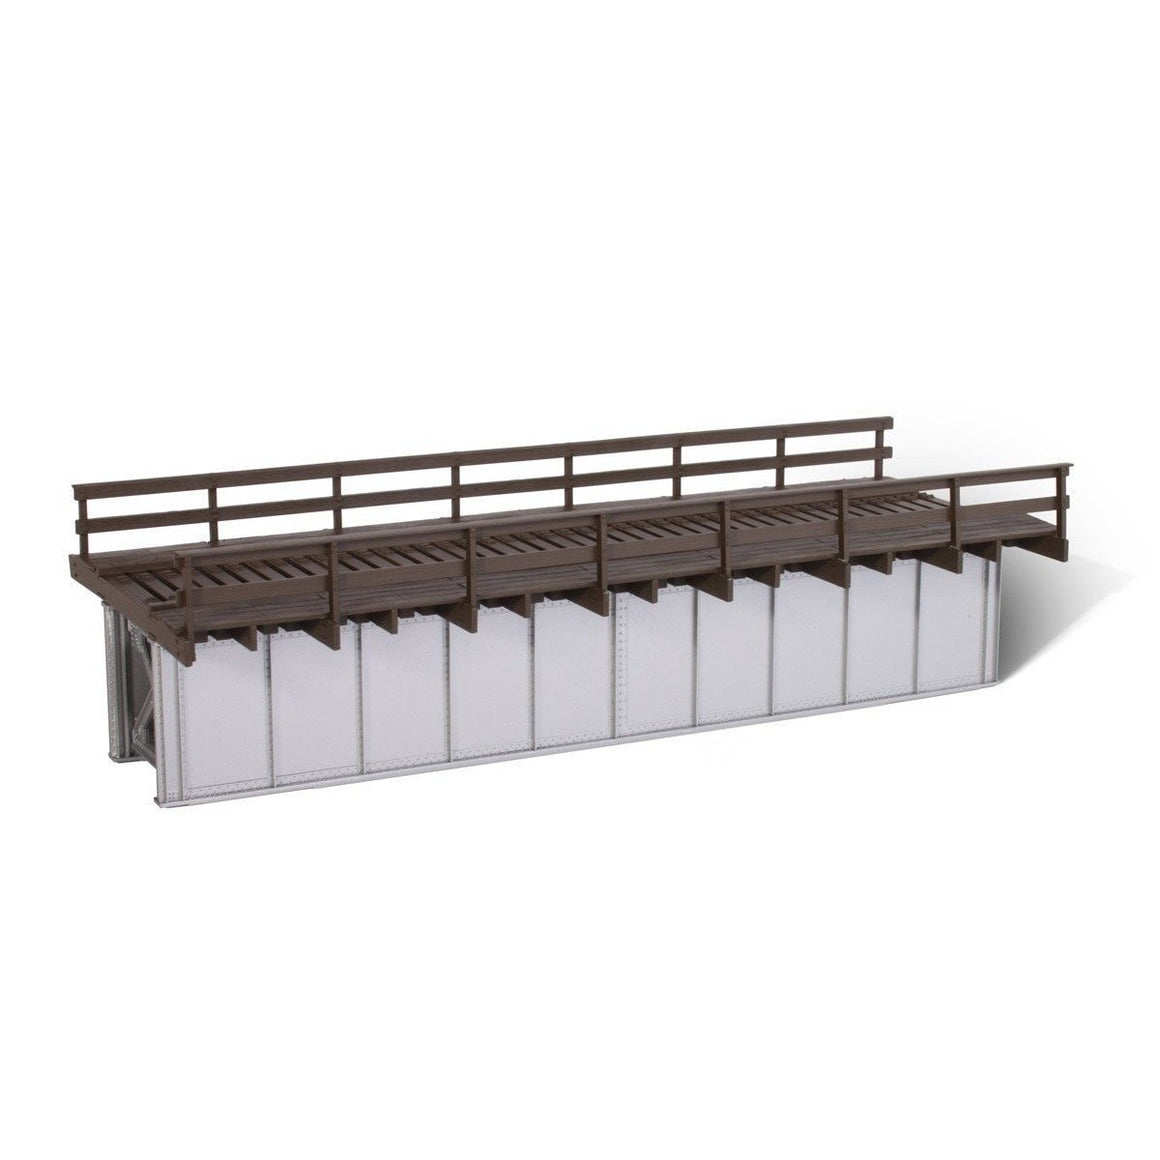 HO Scale: 50' Deck Plate Girder Bridge - Wood Handrails - Black, Silver, Green